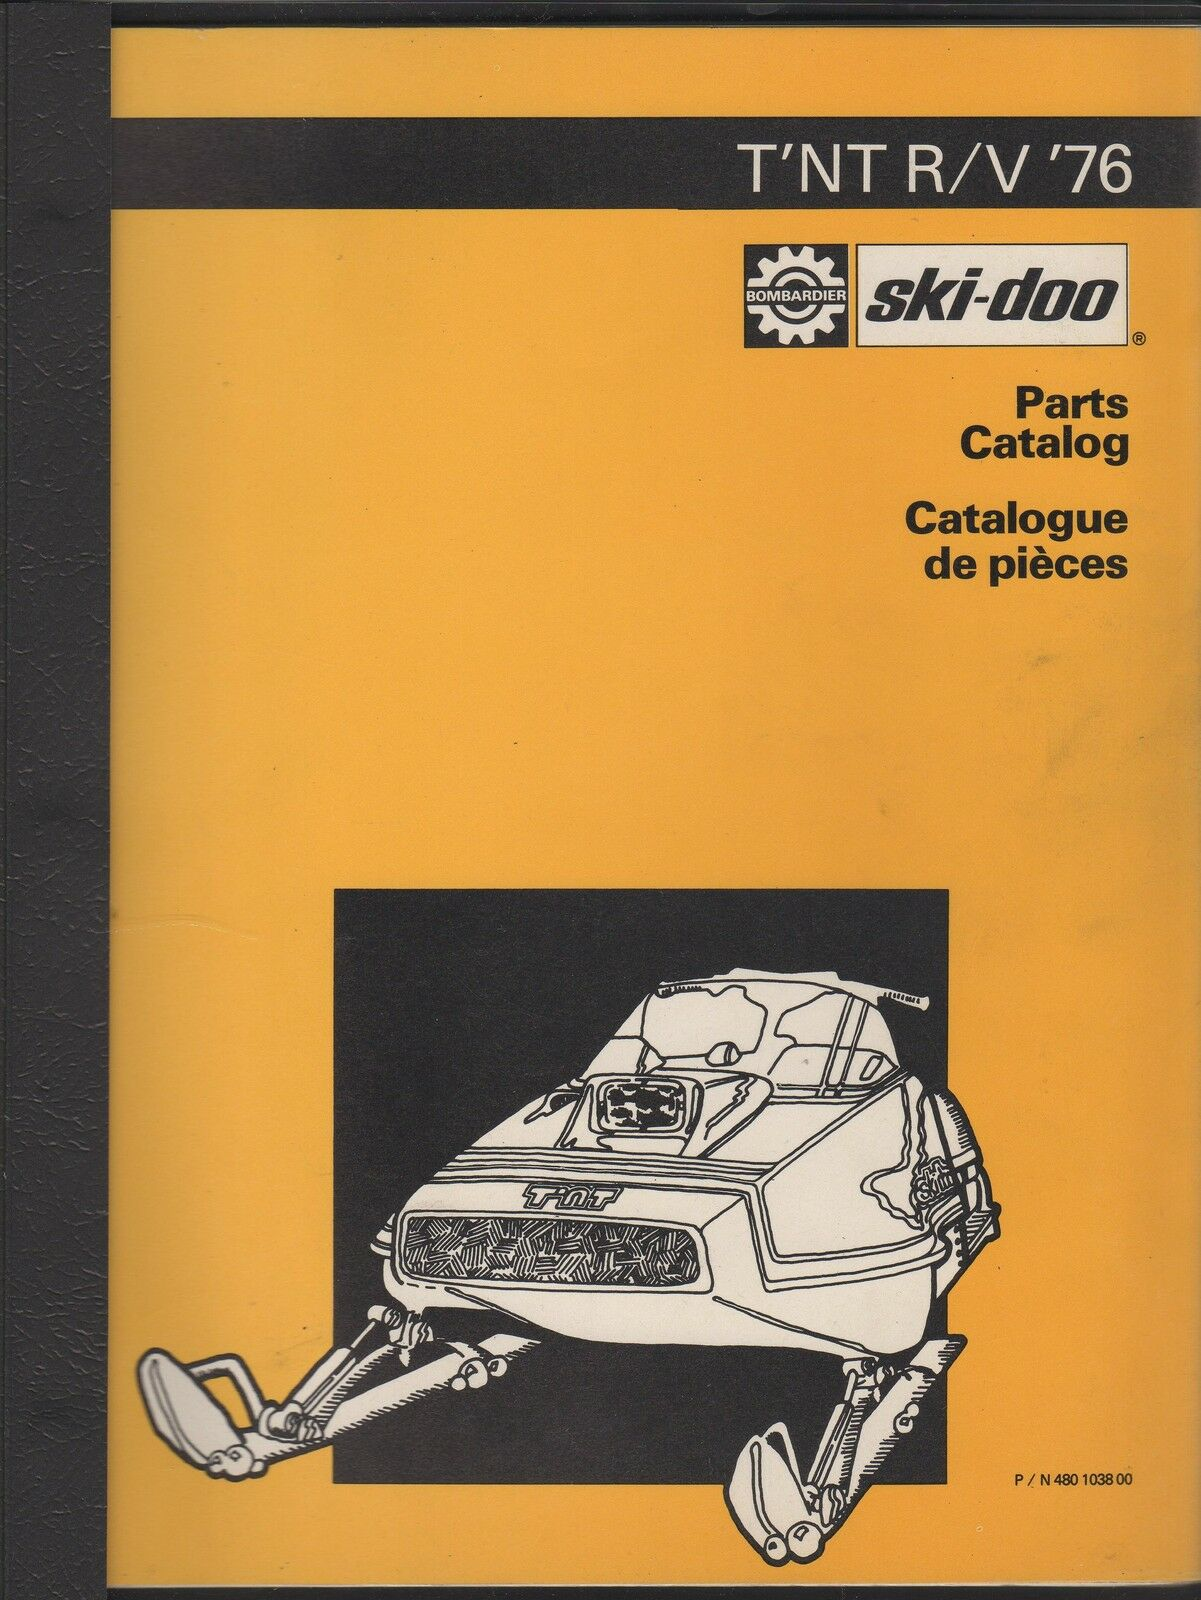 1976 SKI-DOO T'NT R/V SNOWMOBILE PARTS MANUAL NICE